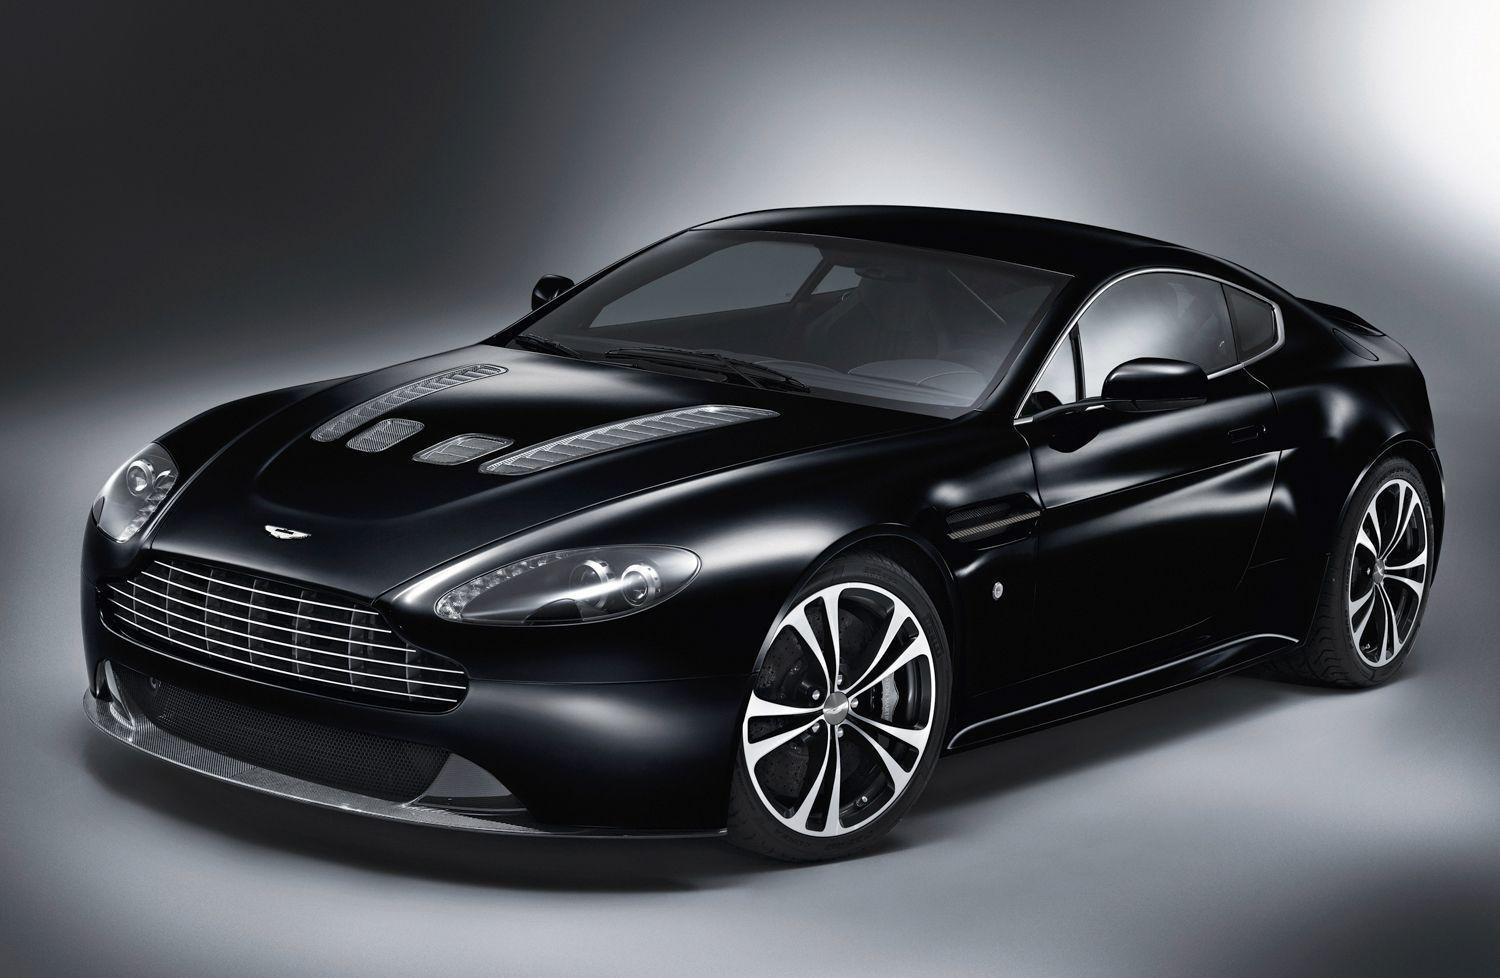 Picture 2016, 2015 Aston Martin Vanquish Carbon Black HD Quality